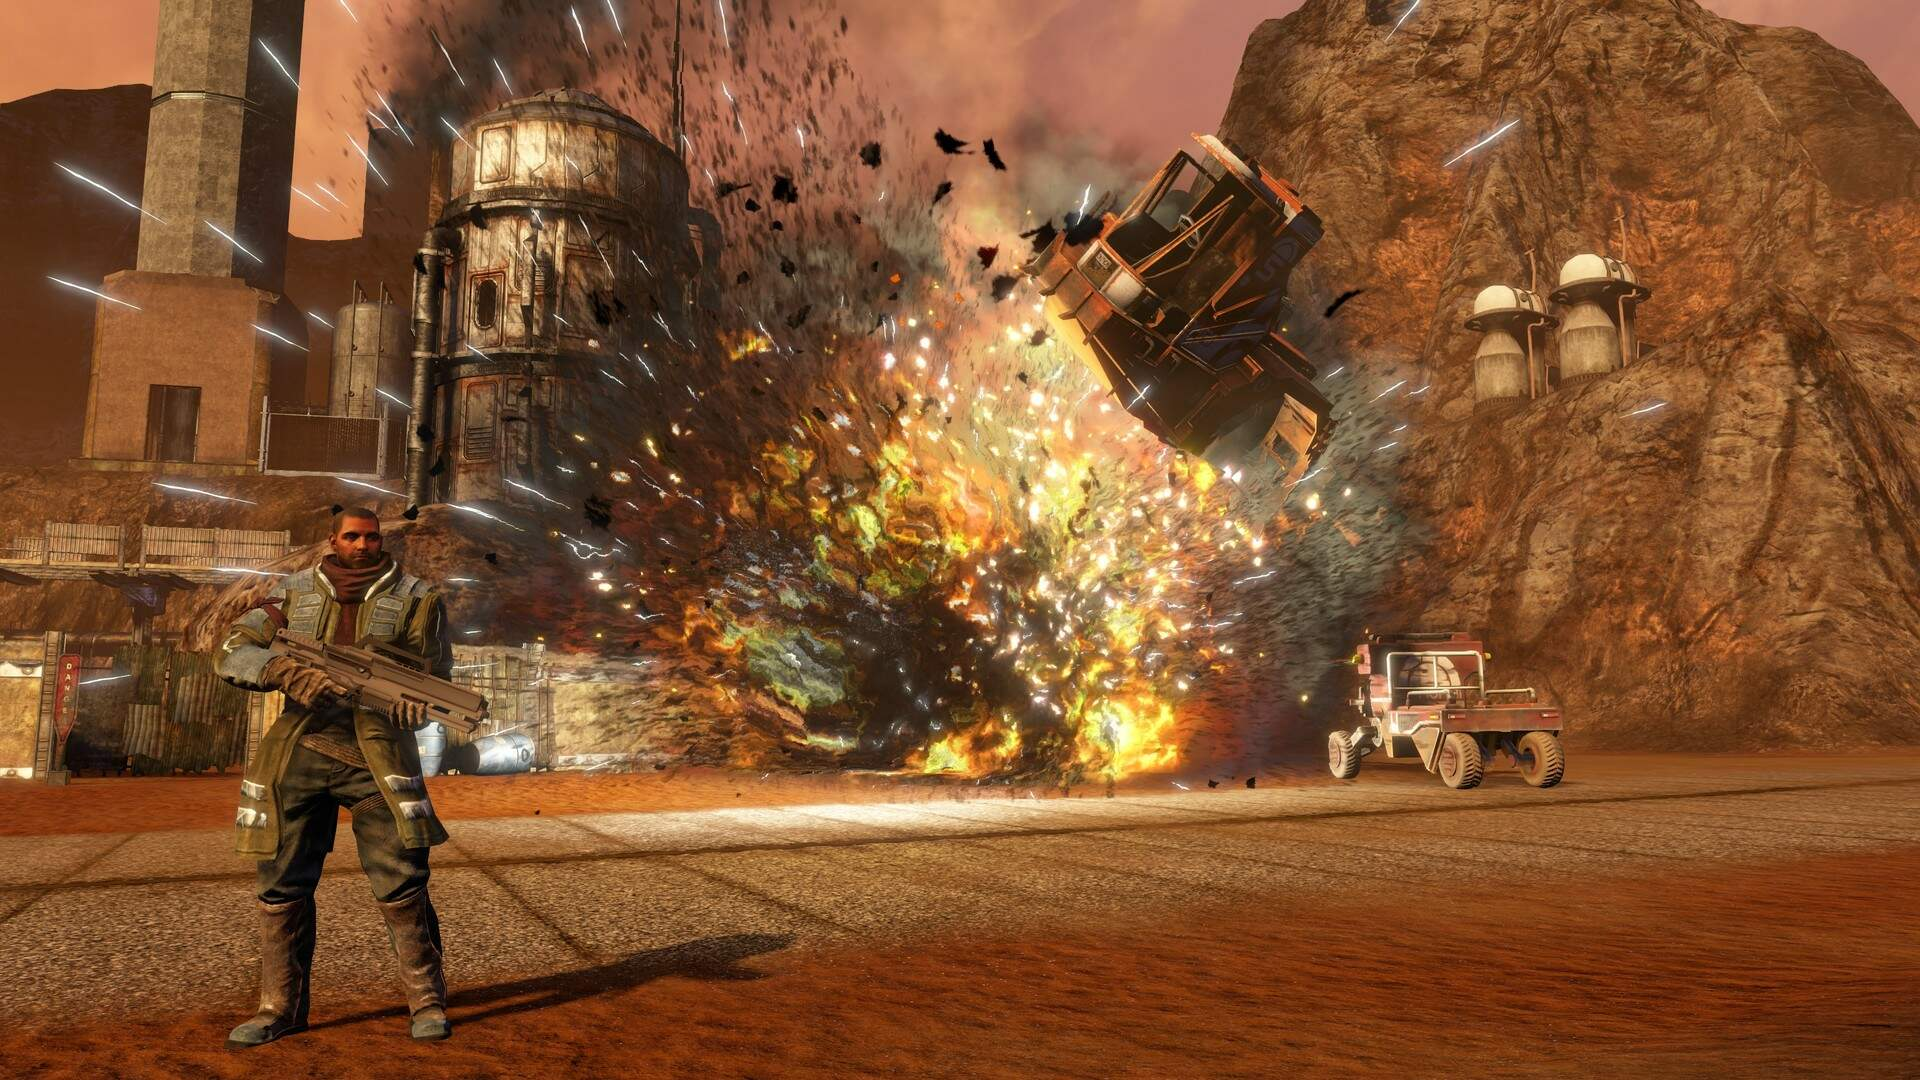 The Next Red Faction Might Have Leaked on Nvidia's Ansel Site